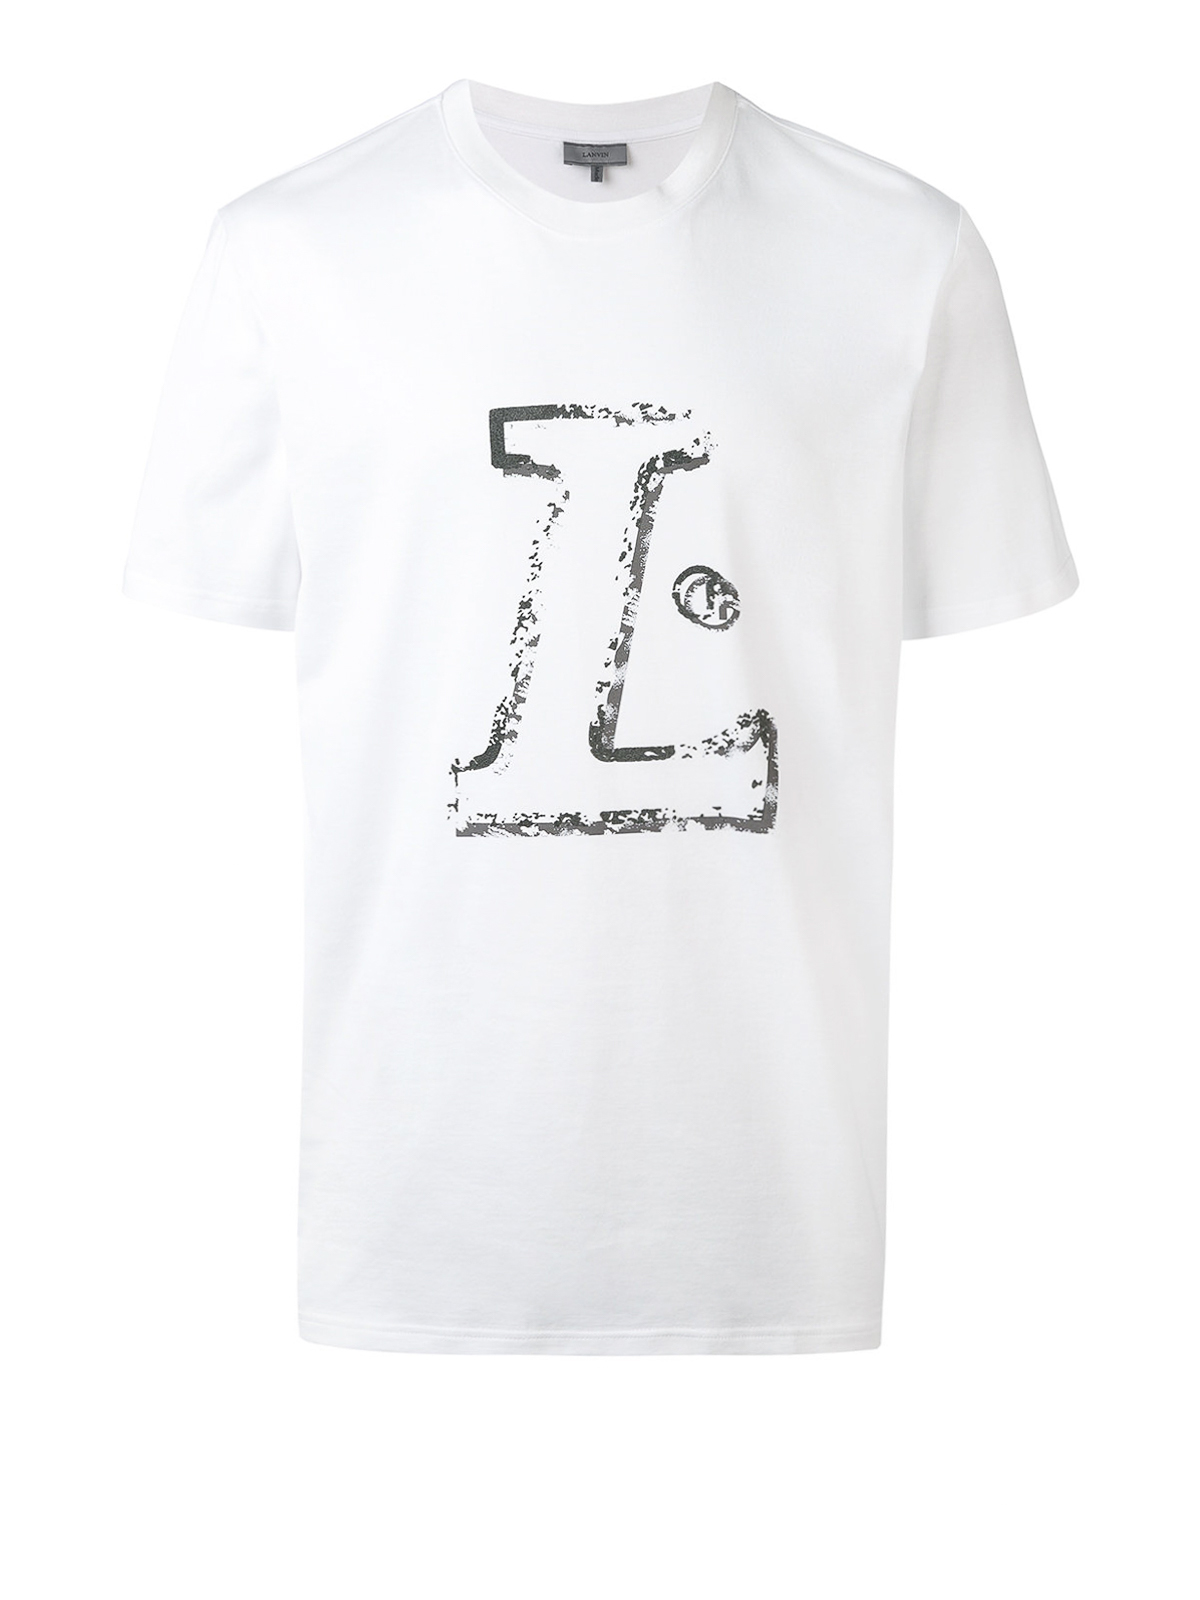 logo tshirt by lanvin tshirts shop online at ikrix